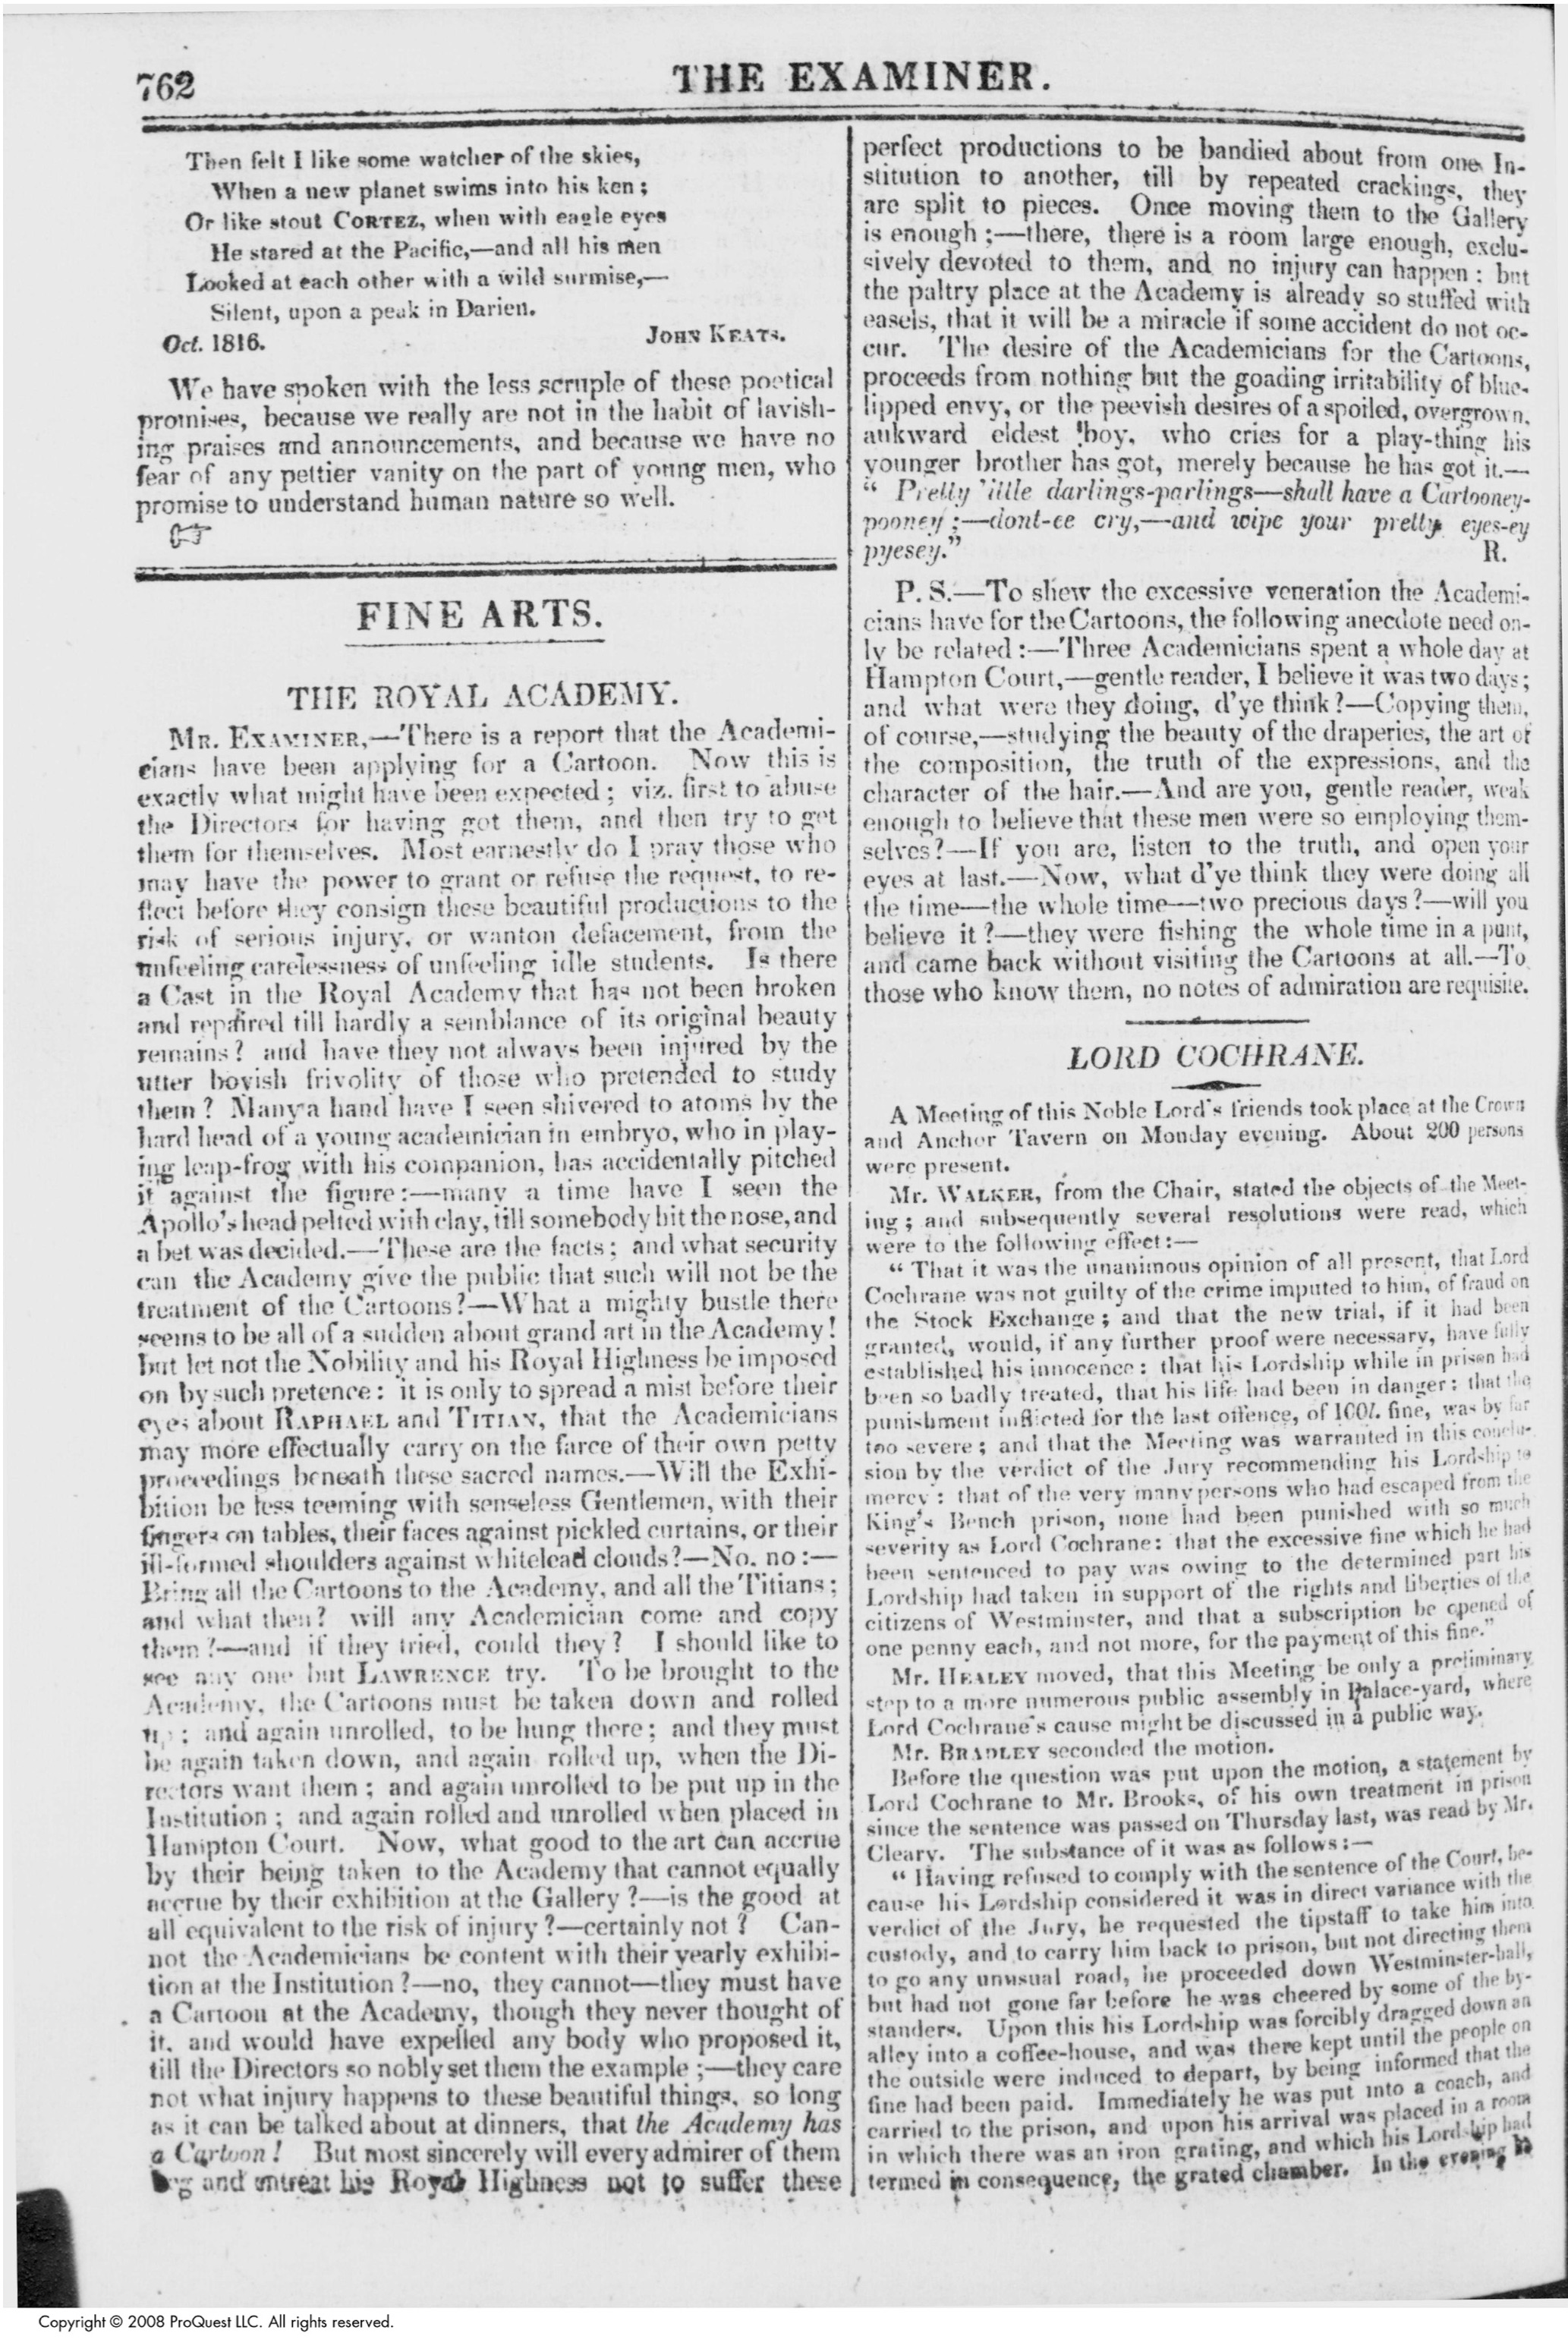 leigh hunt s young poets essay dec the keats letters page 2 of young poets by leigh hunt from the examiner 1 dec 1816 courtesy british periodicals database click image for full size